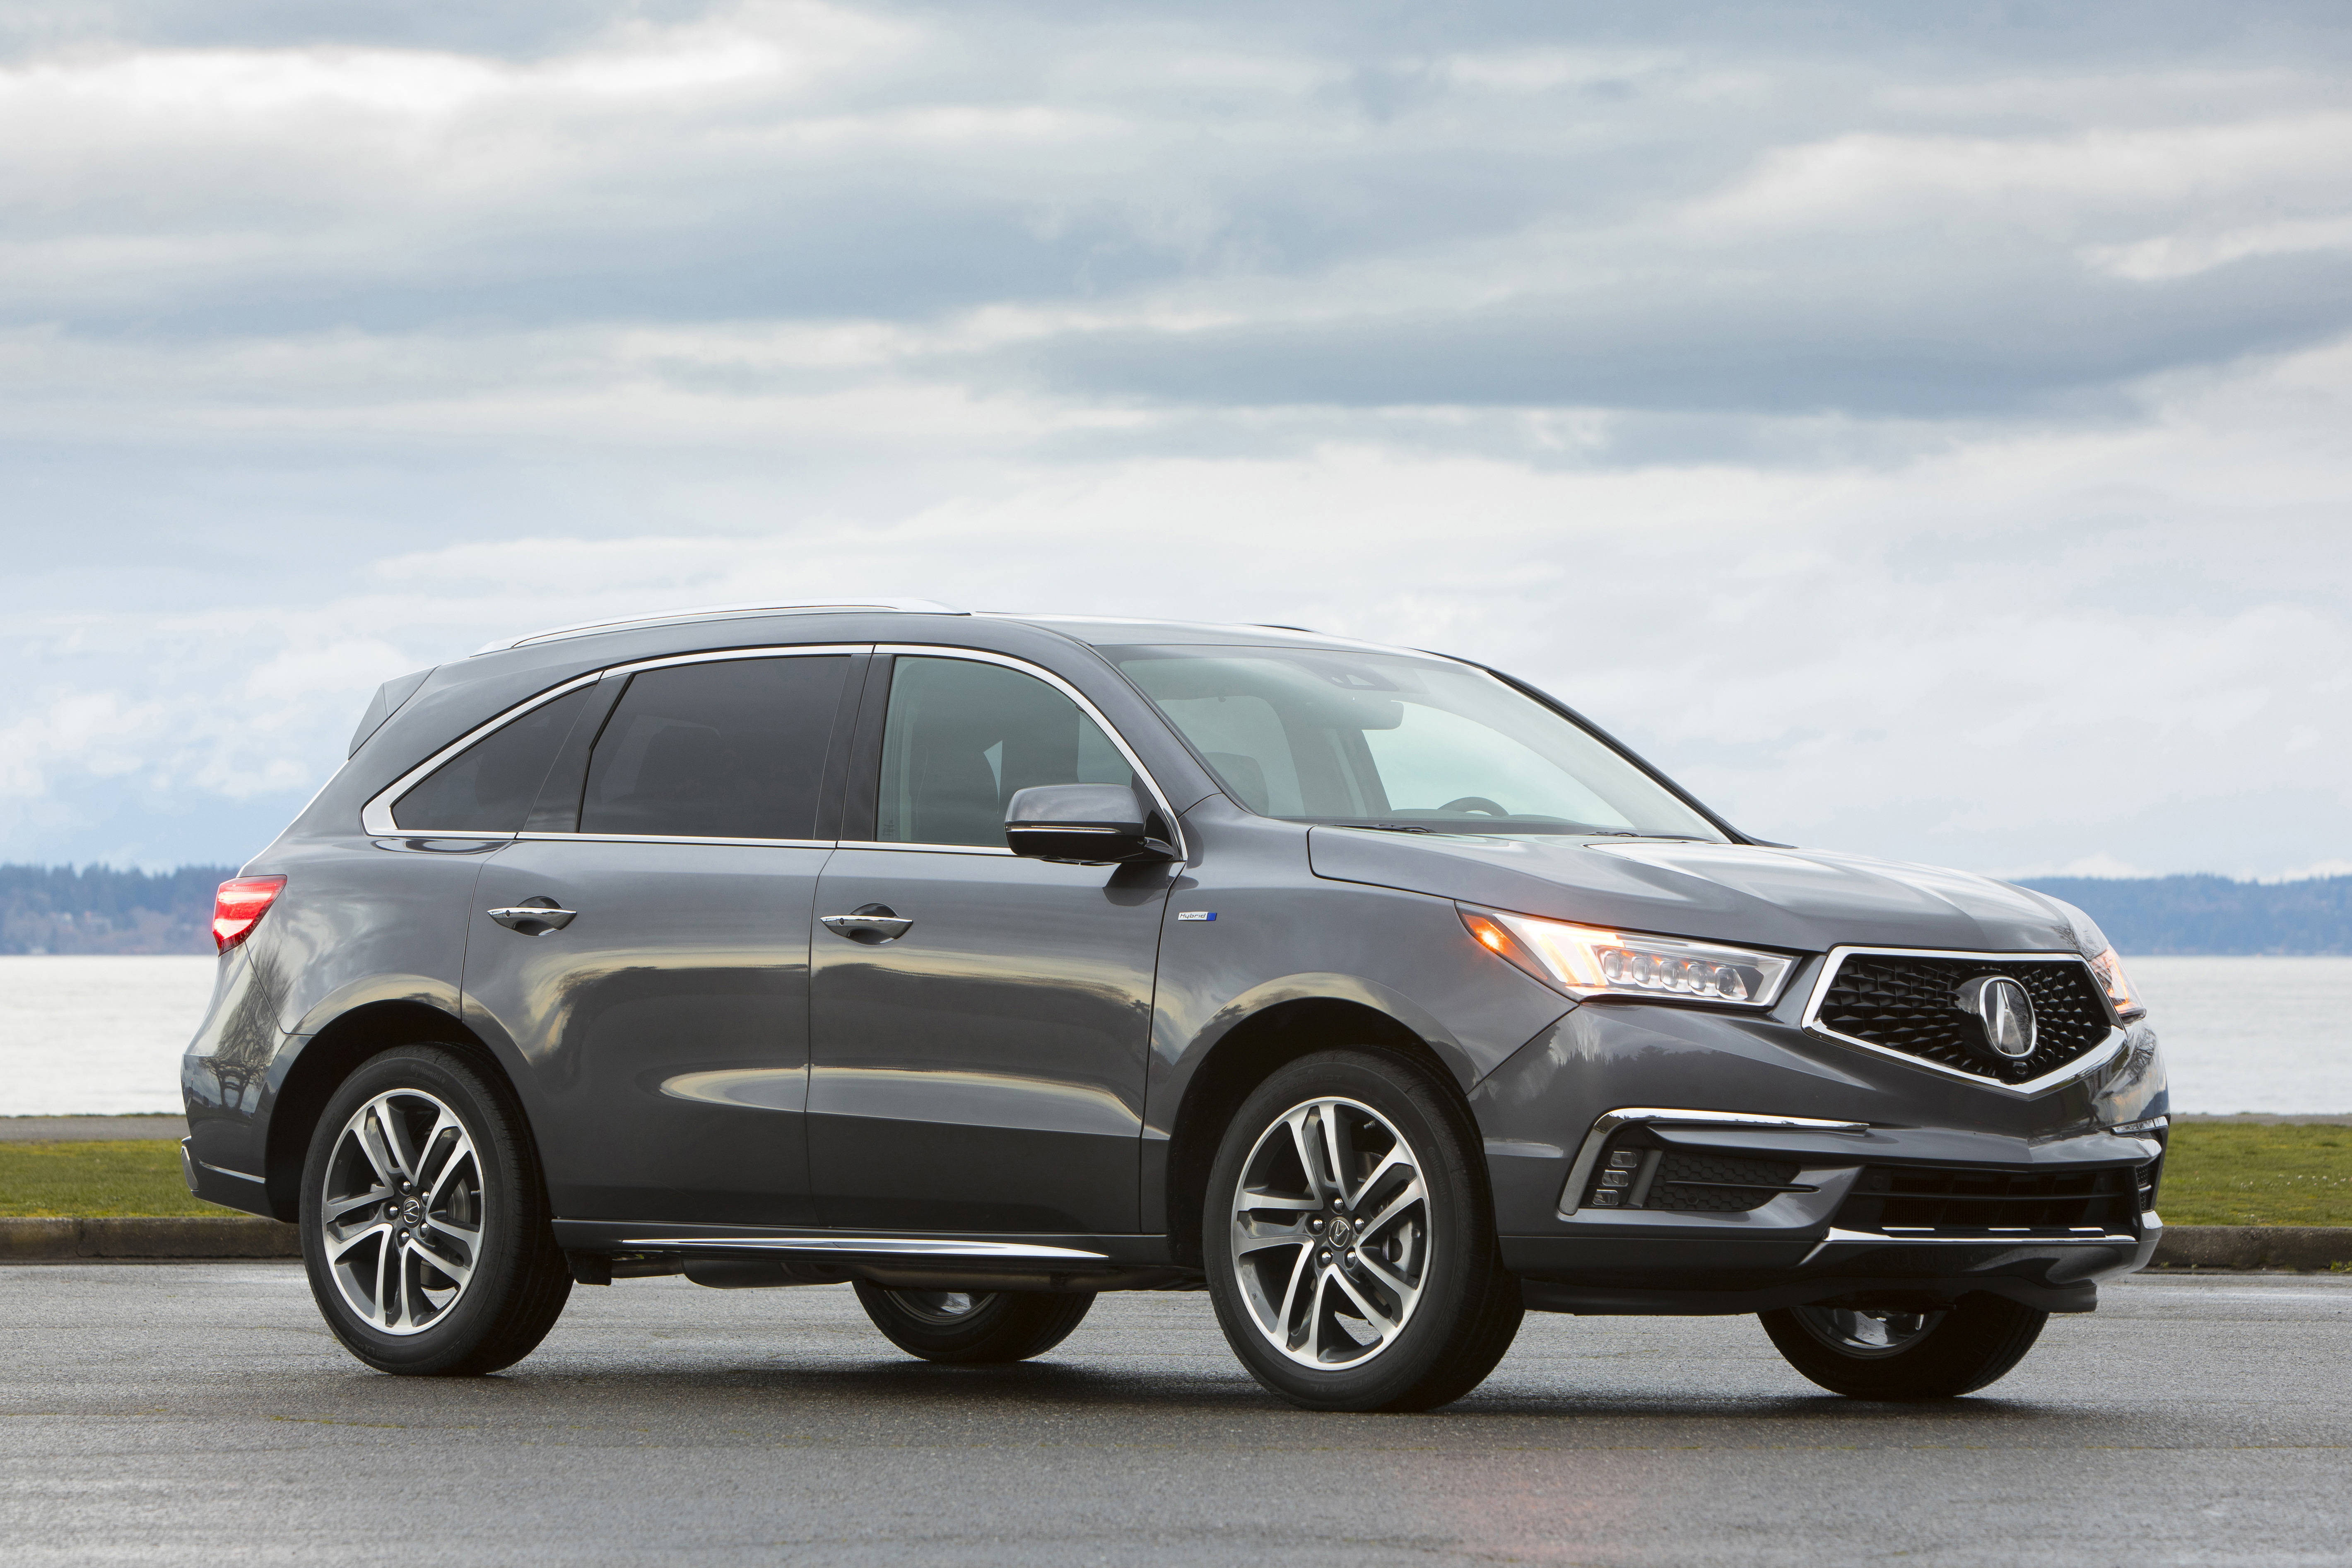 2019 Acura Mdx Sport Hybrid More Price And Fuel Efficiency Than Ice Model The Green Car Guy